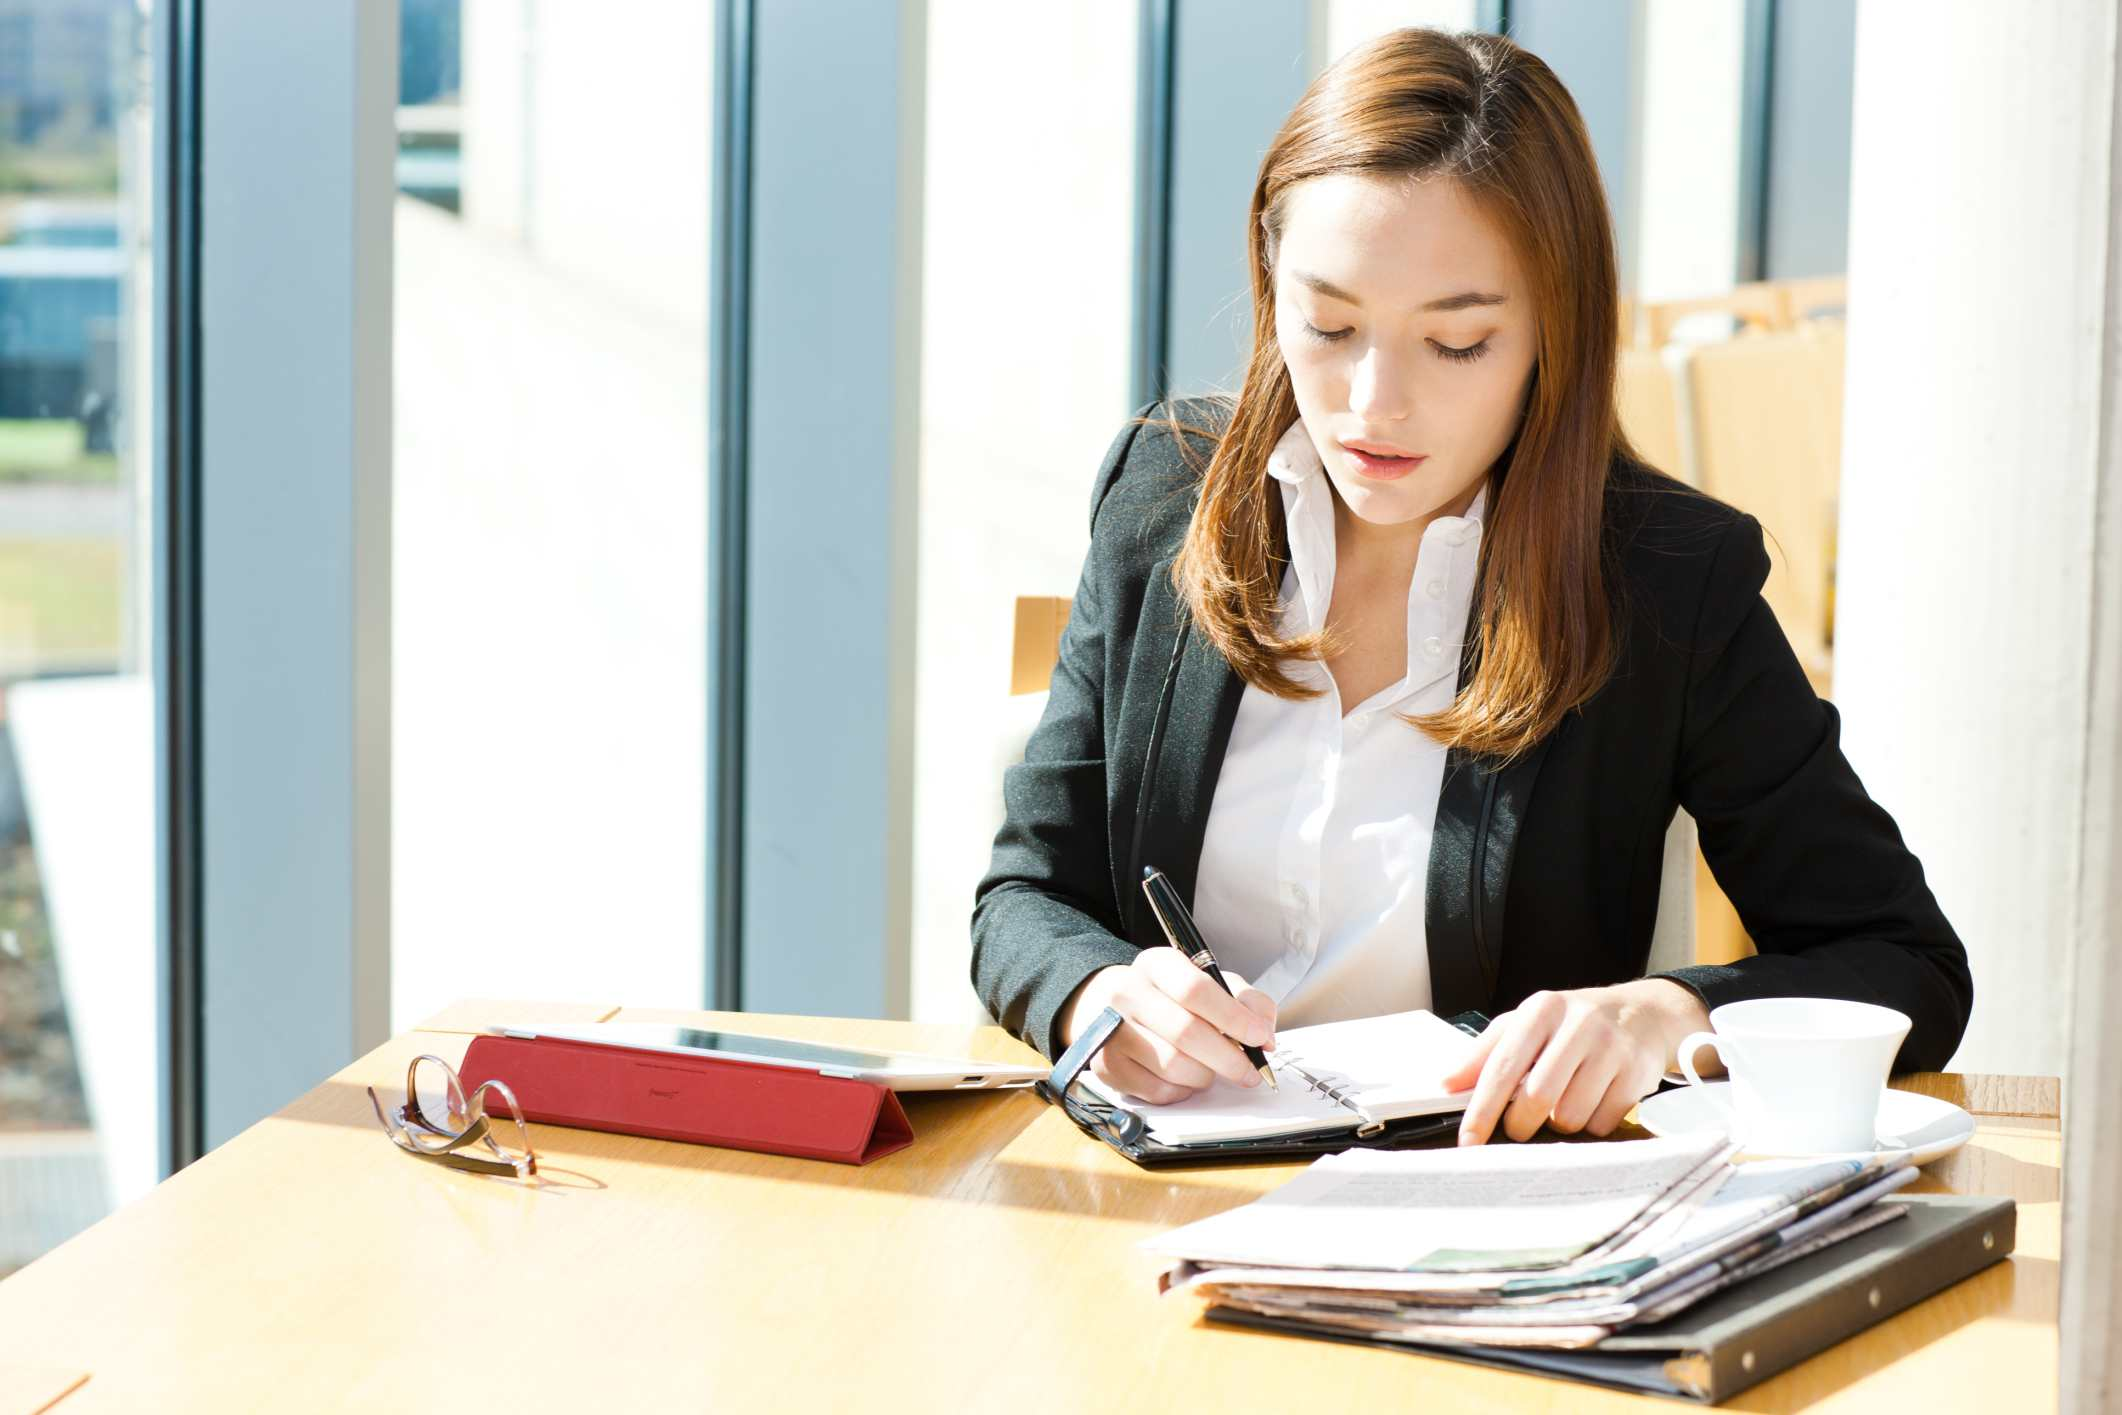 Woman writing in day planner